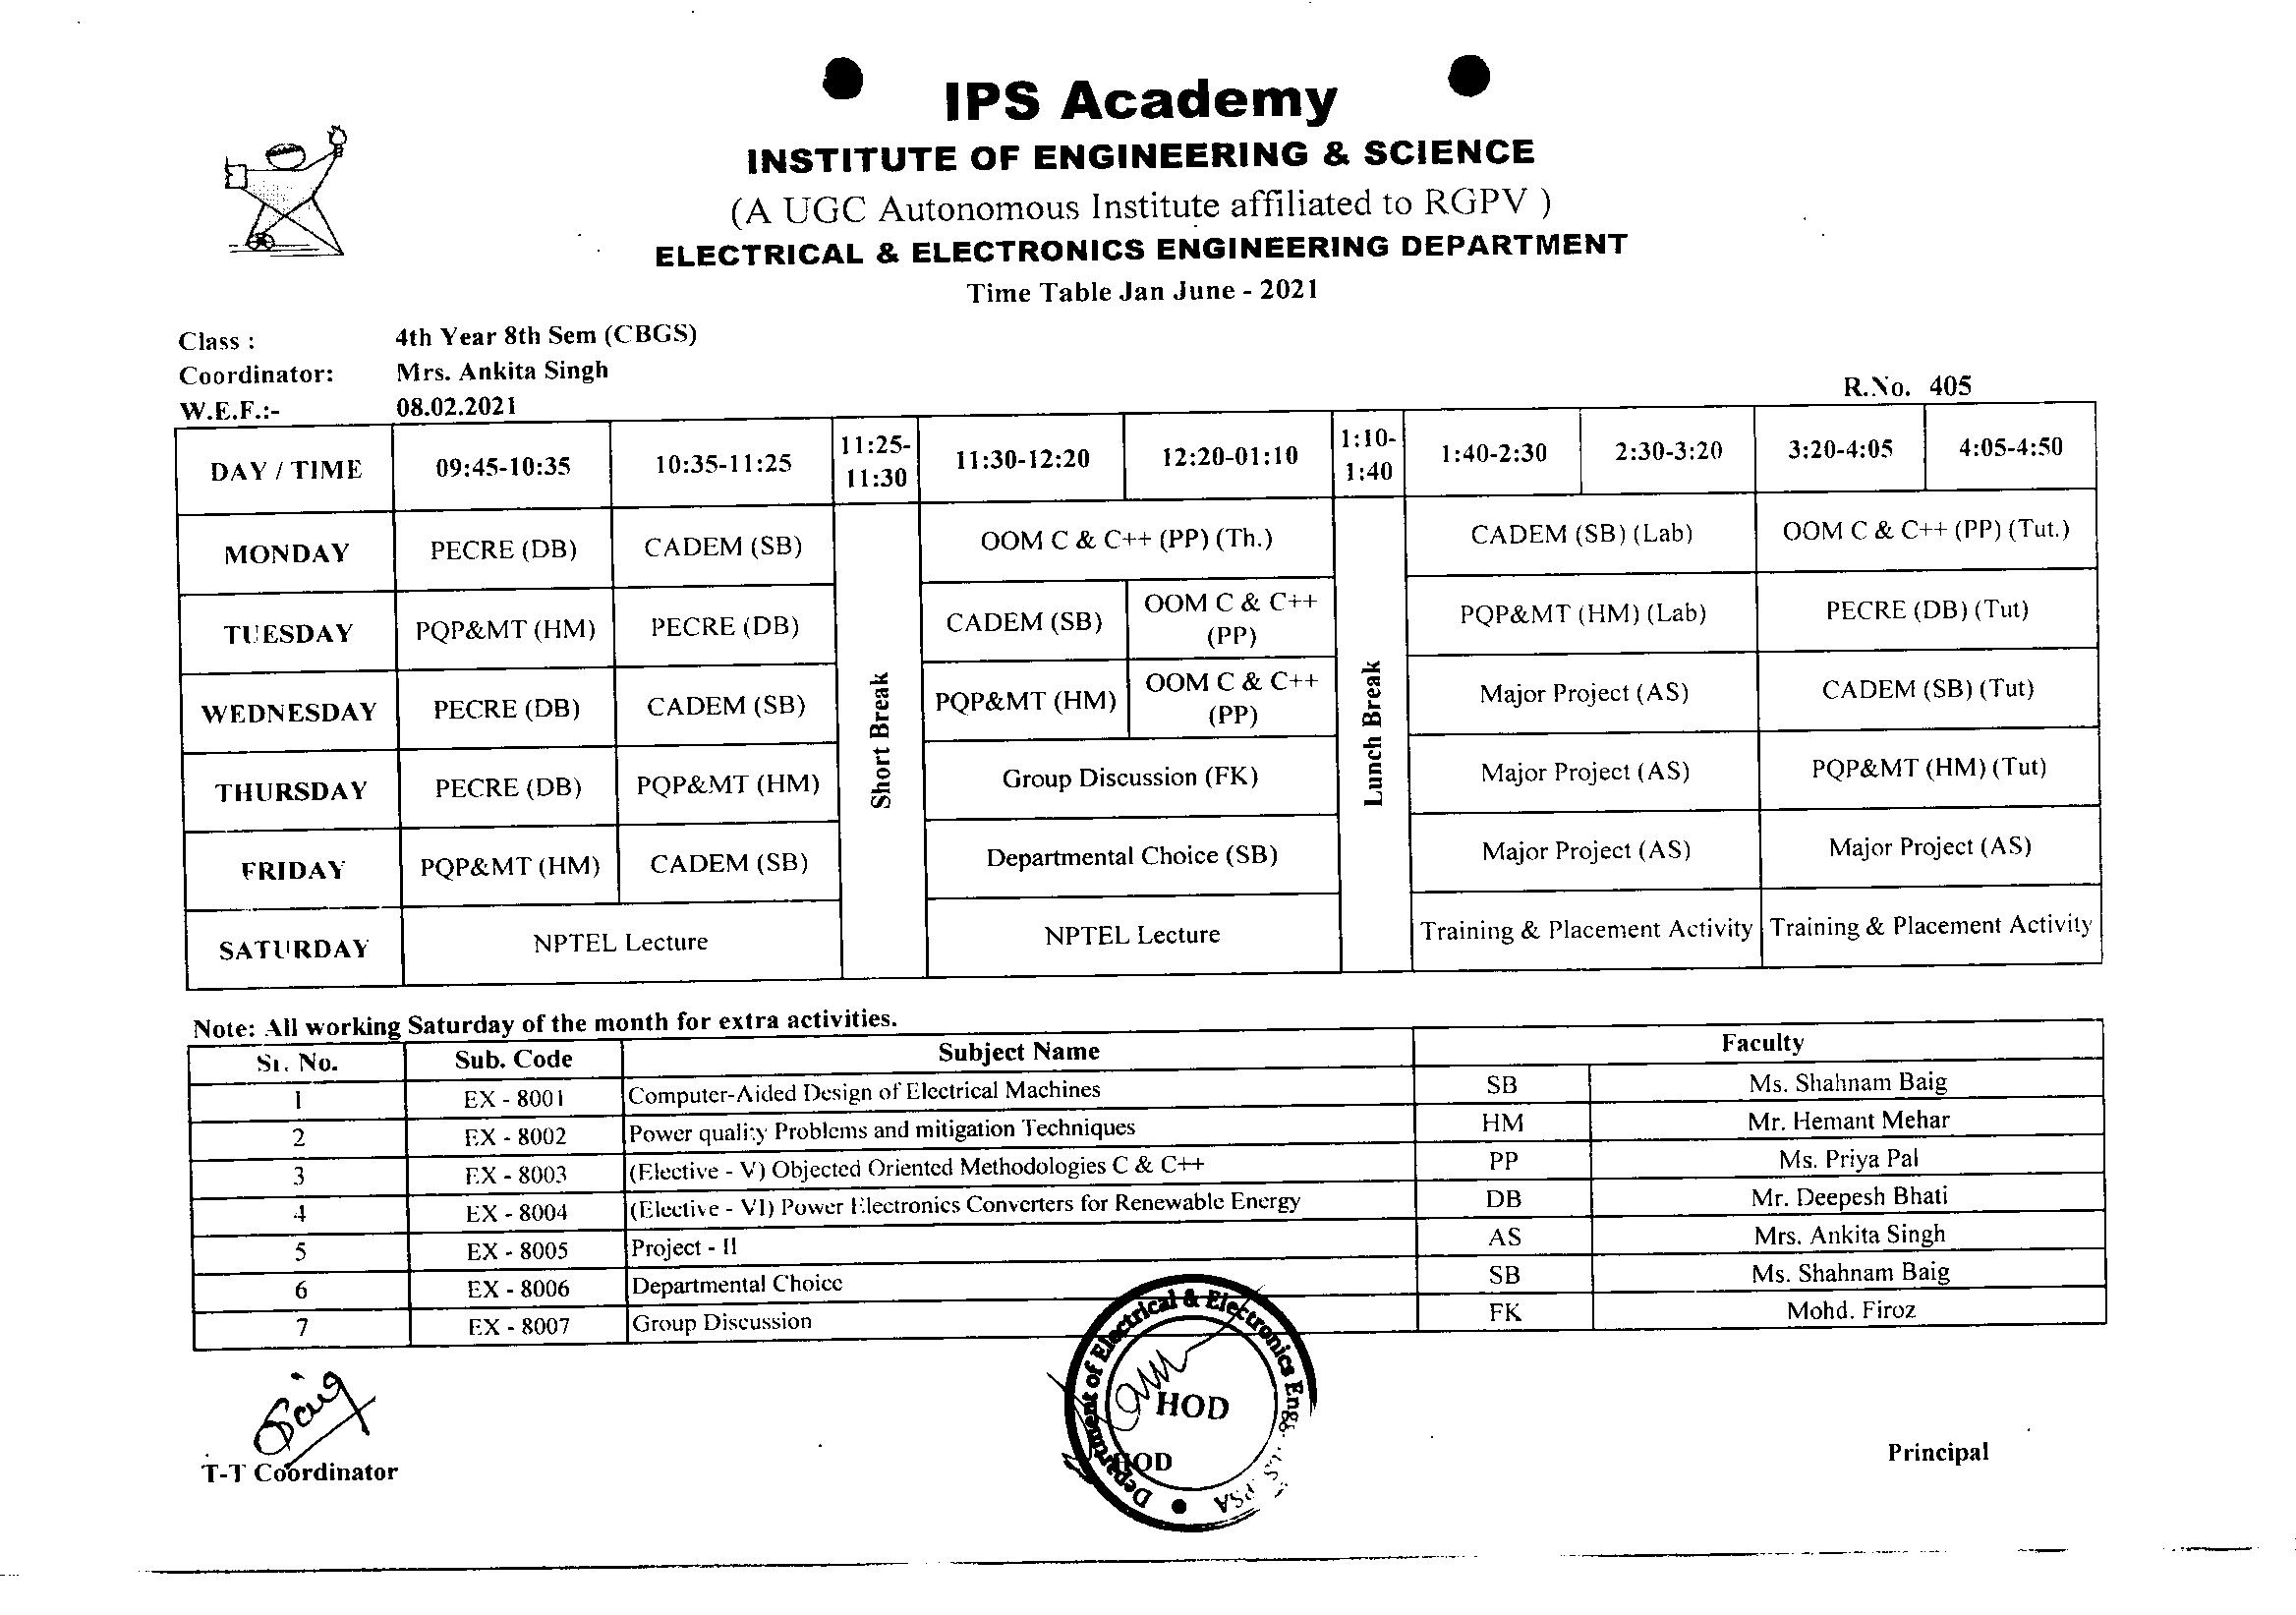 4th Year 8th Sem (CBGS) Jan June 2021